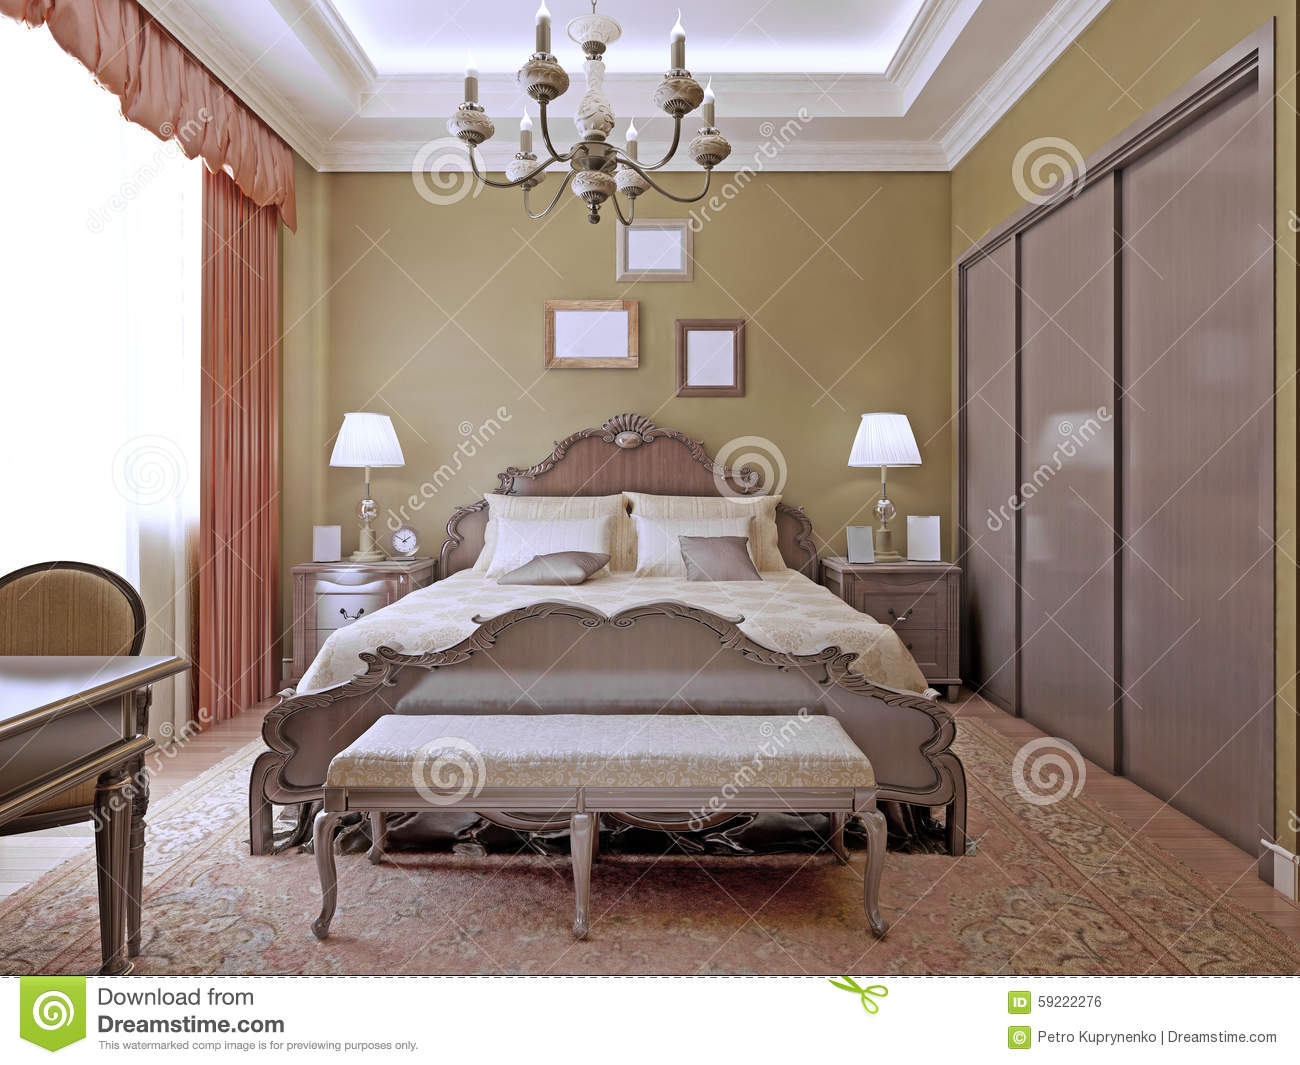 Chambre A Coucher Deco Of Art Deco Bedroom With Ceiling Neon Lights Stock Photo